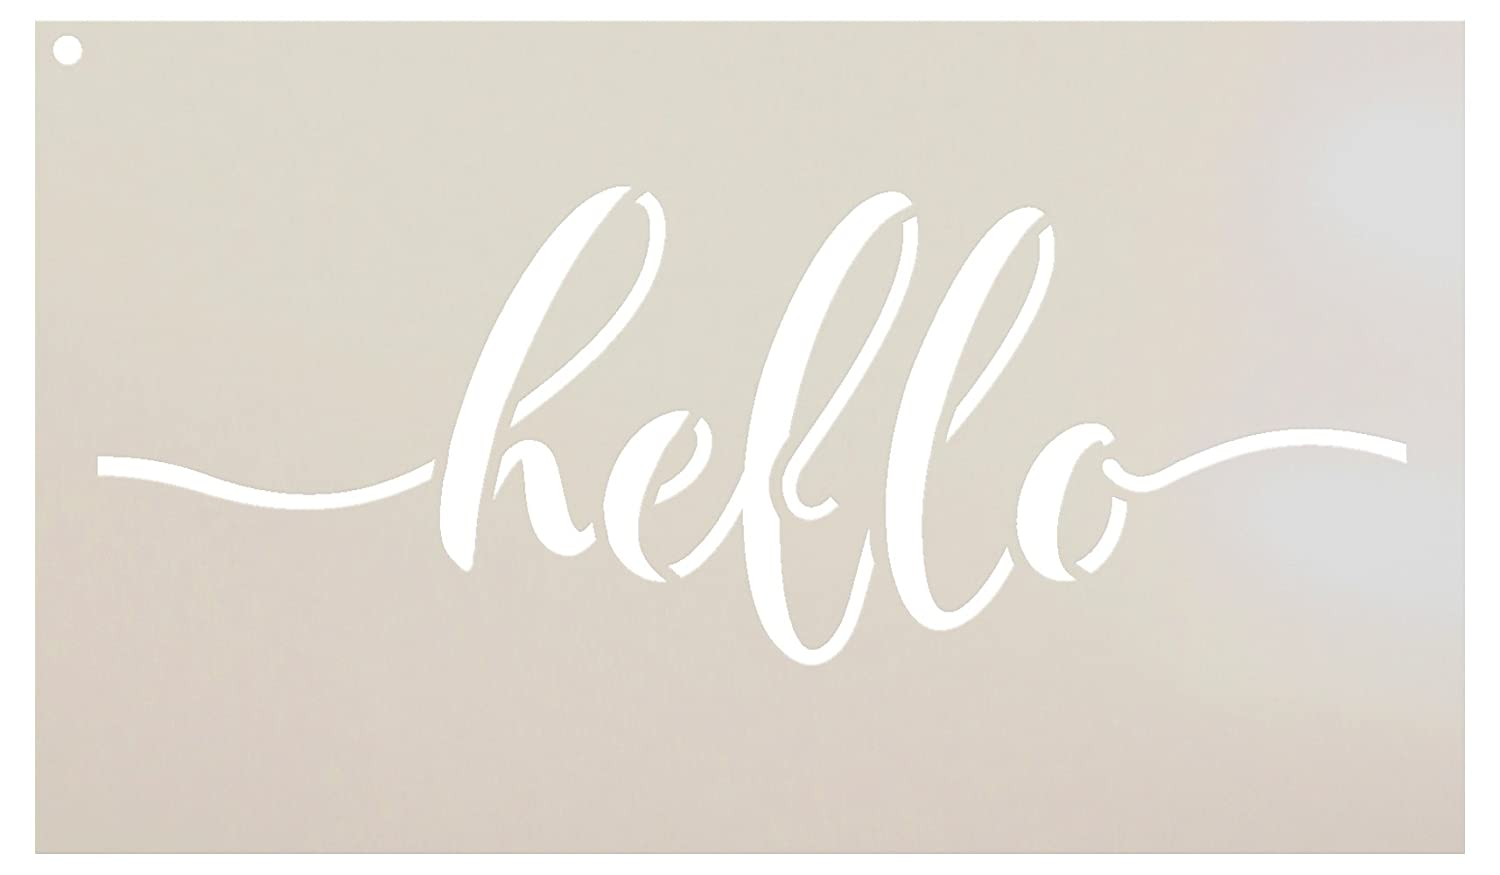 Rustic Hello Stencil by StudioR12 | Hand Drawn Script - Reusable Mylar Template | Painting, Chalk, Mixed Media | Use for DIY Home Decor - STCL1517 - SELECT SIZE (18 x 9) Studio R 12